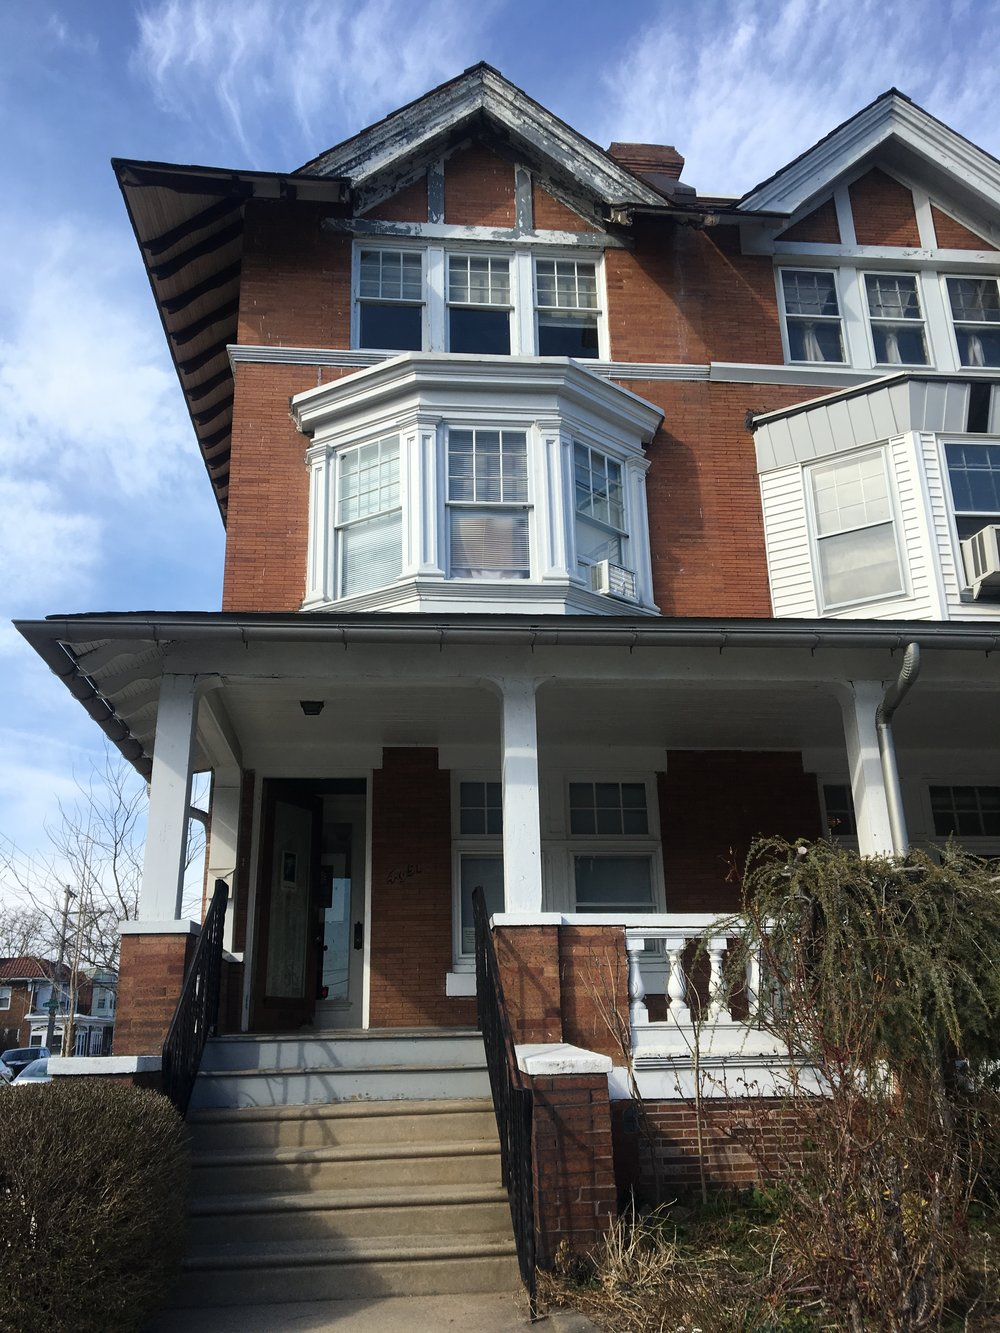 Photos of Paul Robesons house from my visit to Philidelphia March 2019